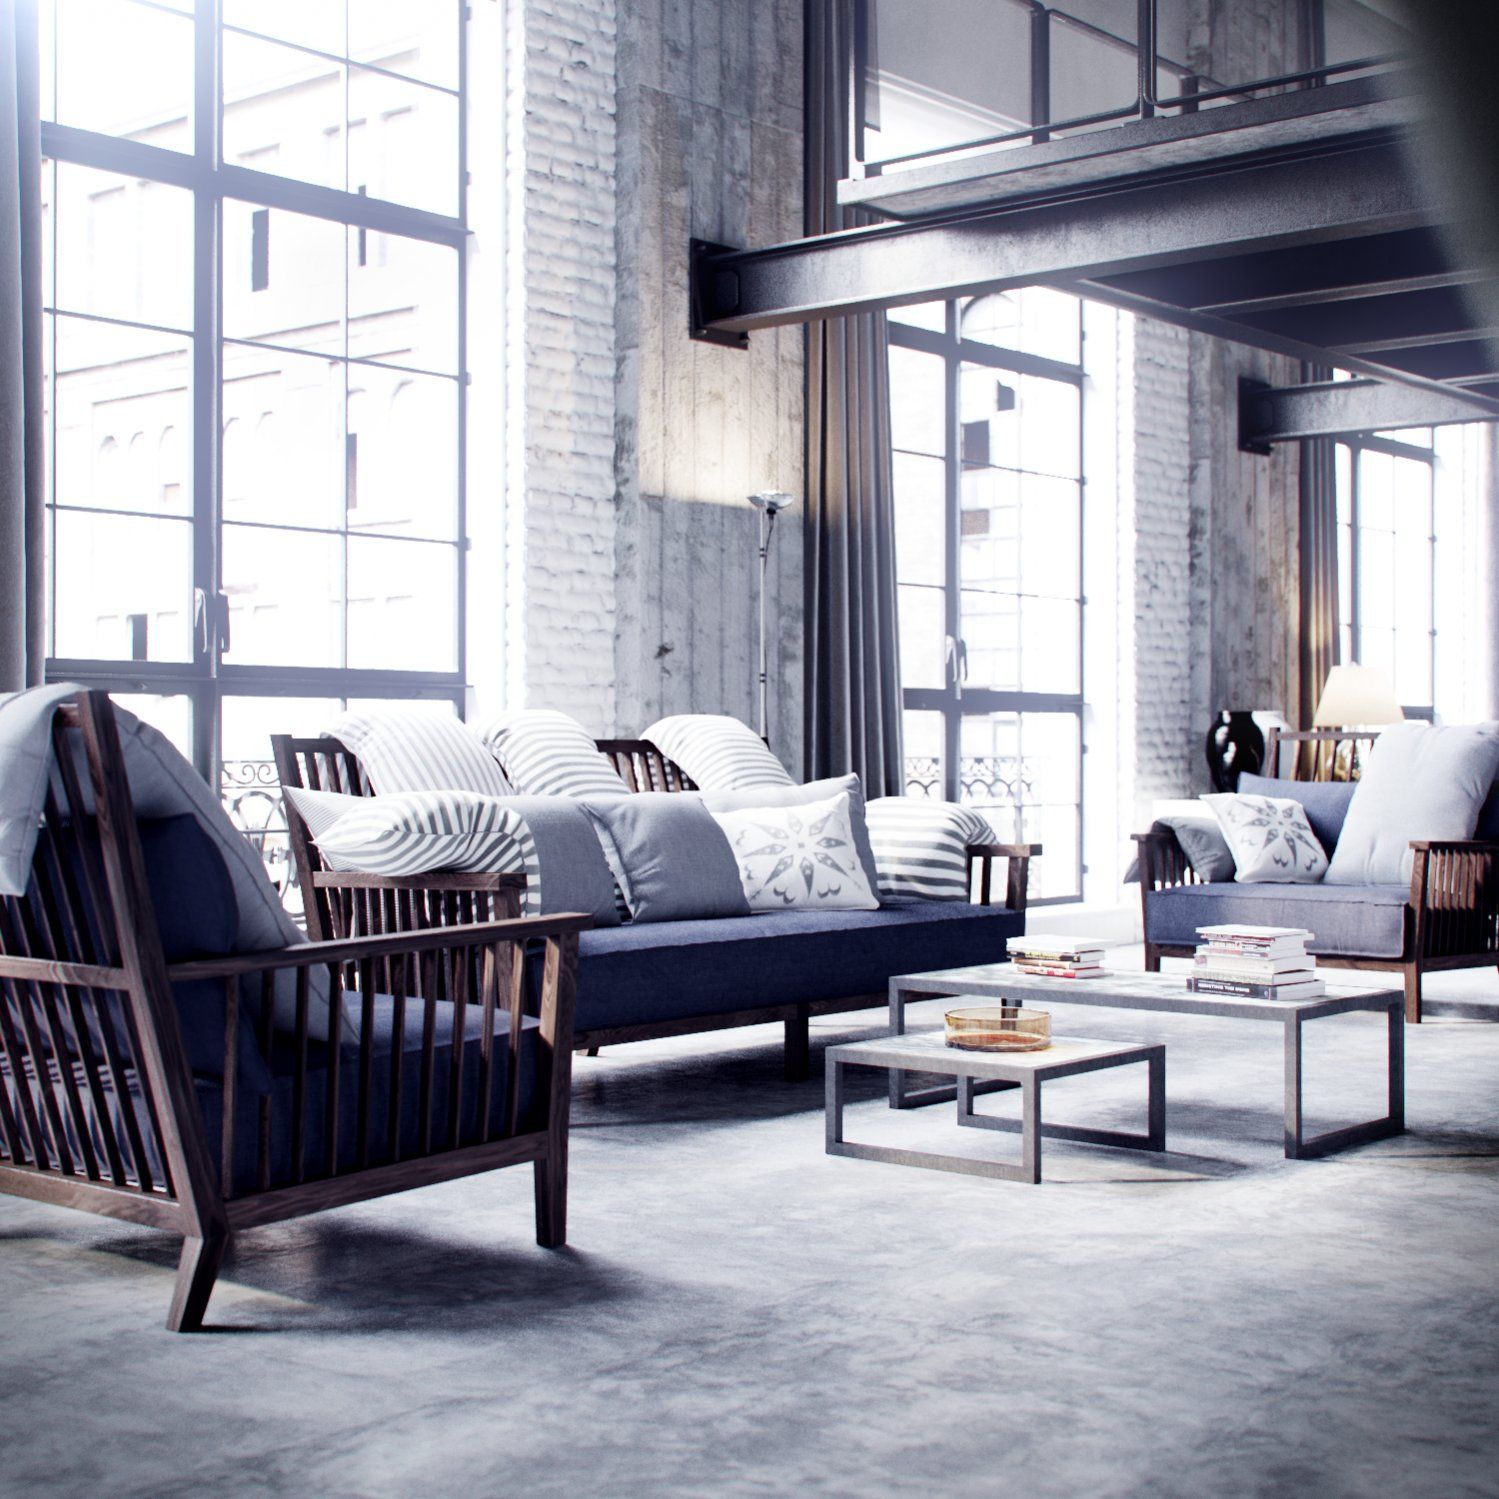 J3dsn remake corona loft by bbb3viz by me 3ds max for Architecture 3ds max